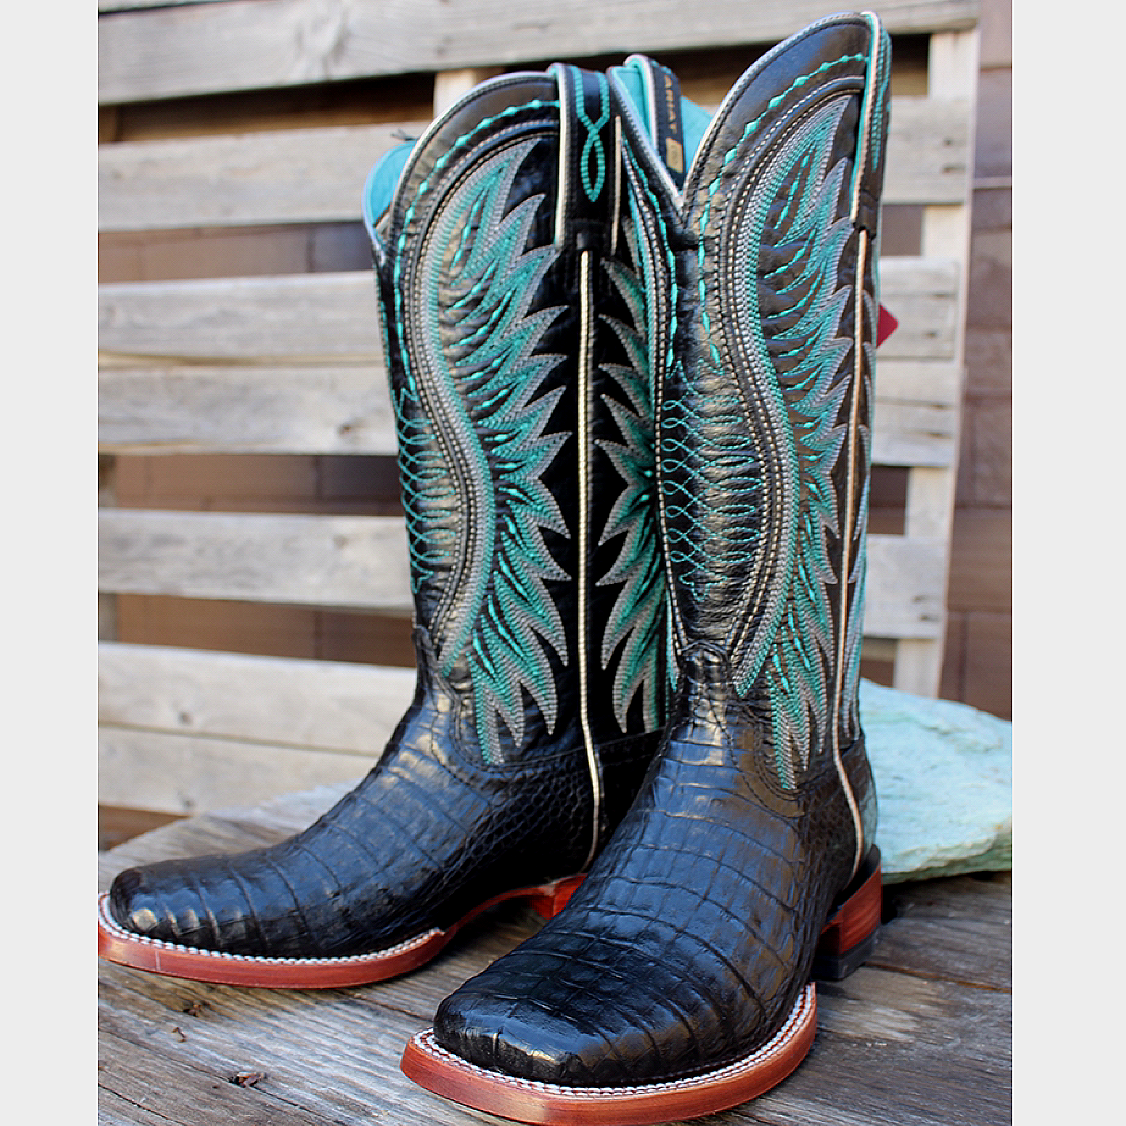 Vaquera Caiman from Ariat